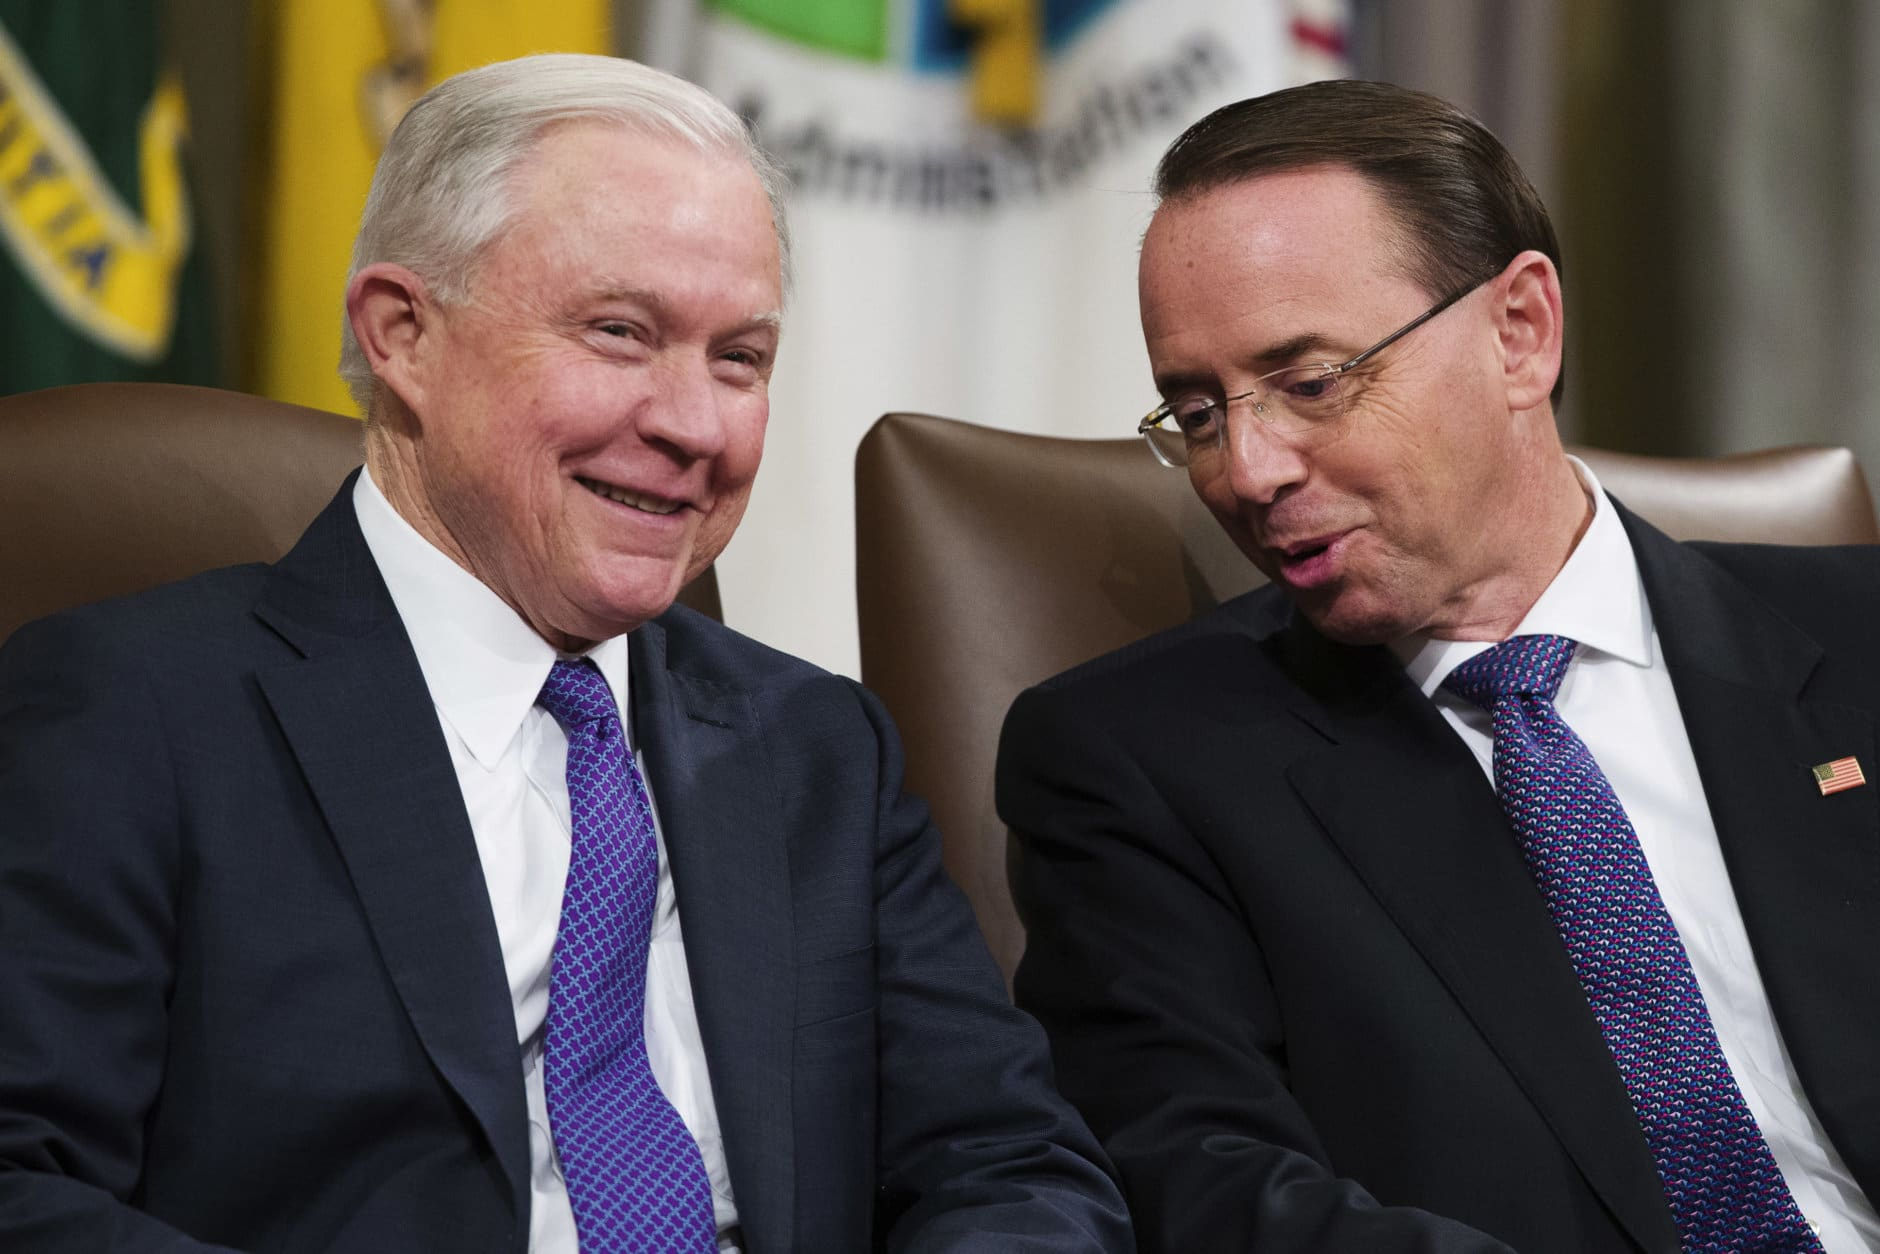 Attorney General Jeff Sessions, left, and Deputy Attorney General Rod Rosenstein, talk during an event to announce new strategic actions to combat the opioid crisis at the Department of Justice's National Opioid Summit in Washington on Oct. 25, 2018. (AP Photo/Alex Brandon)